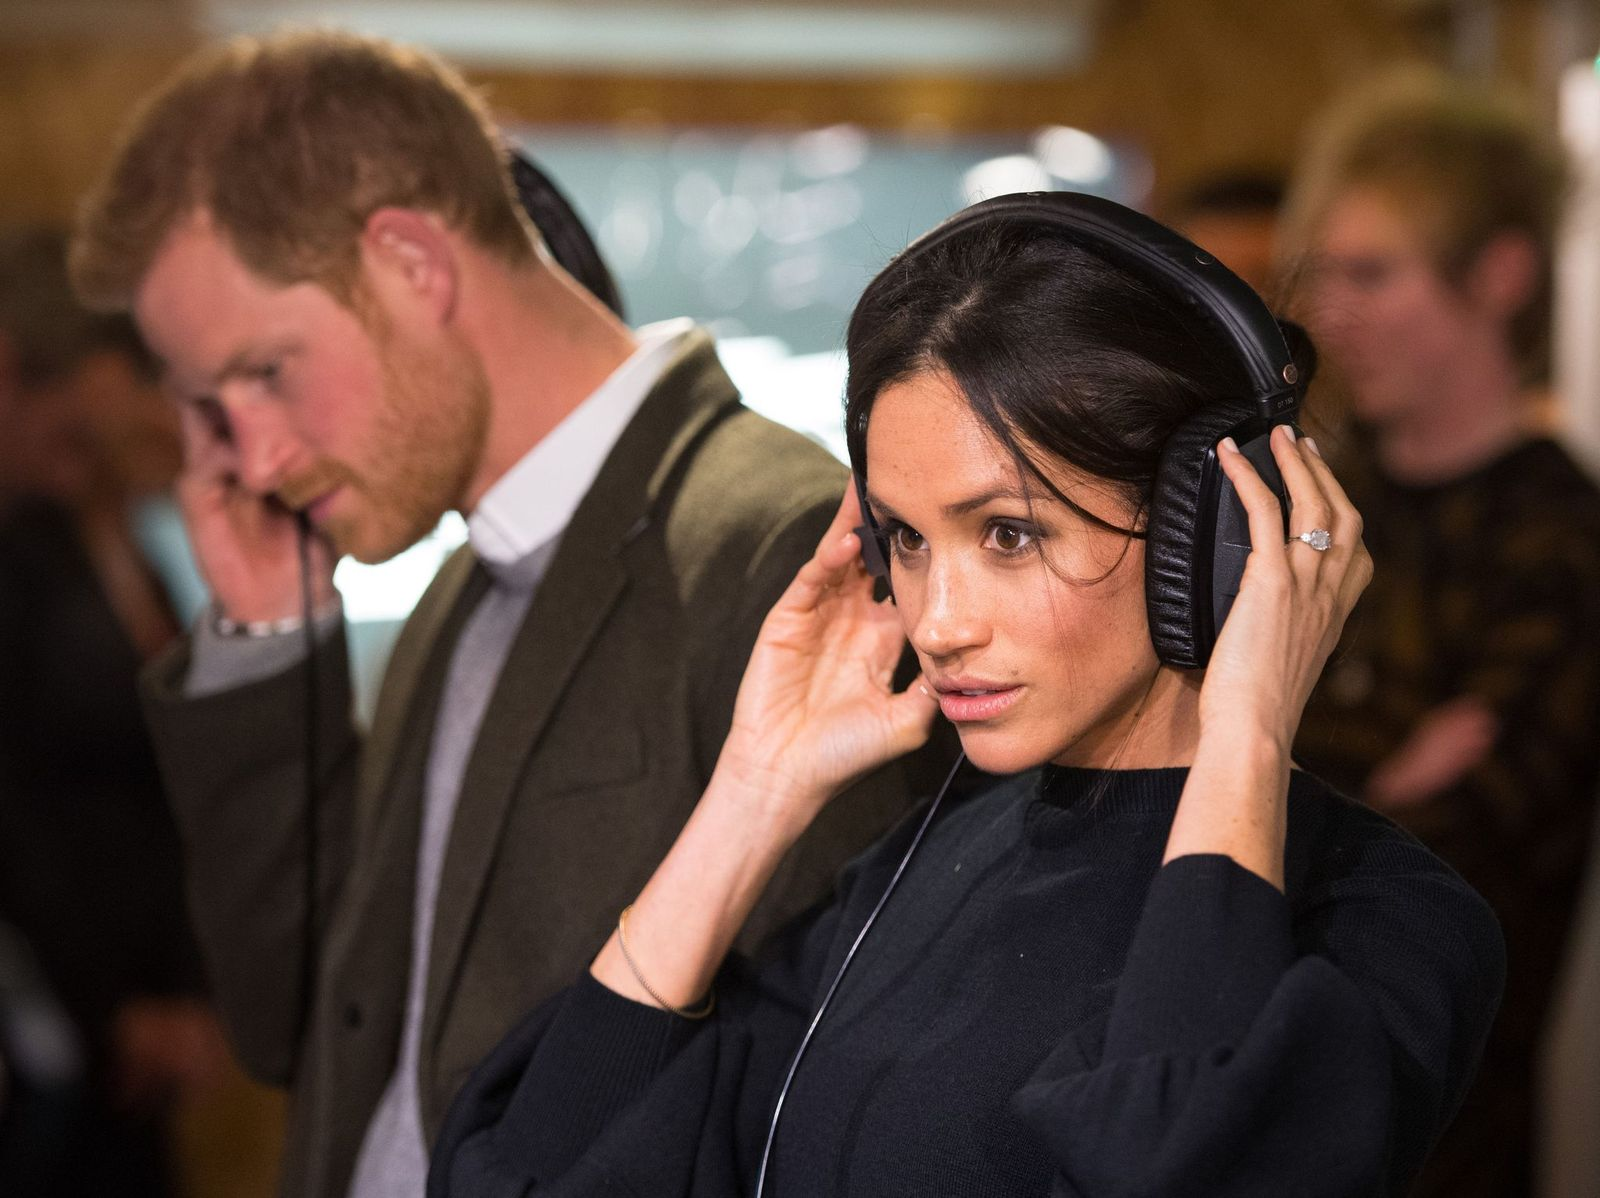 Prince Harry and Meghan Markle listen to a broadcastat Reprezent 107.3FM in Pop Brixton on January 9, 2018, in London, England   Photo:Dominic Lipinski - WPA Pool/Getty Images